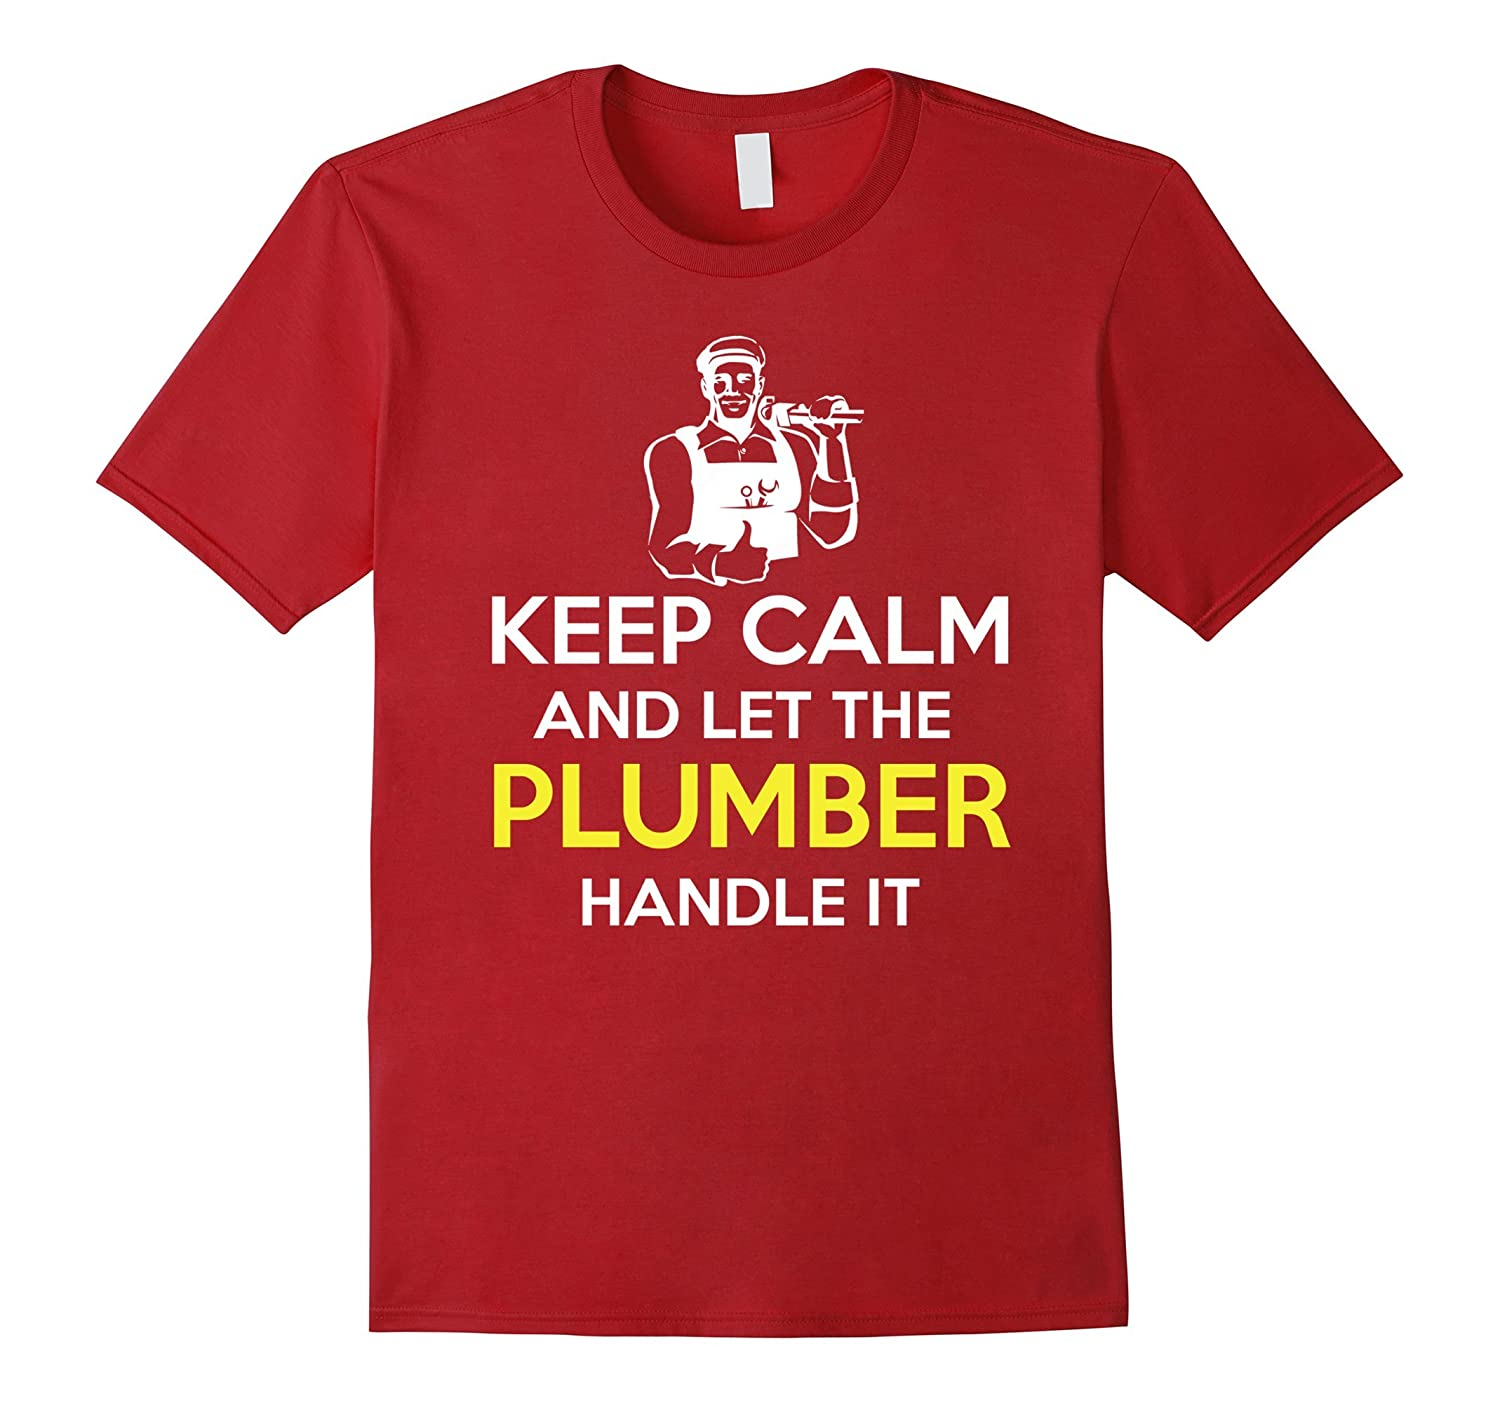 Plumber T-shirt - Keep Calm and let the Plumber handle it-TD